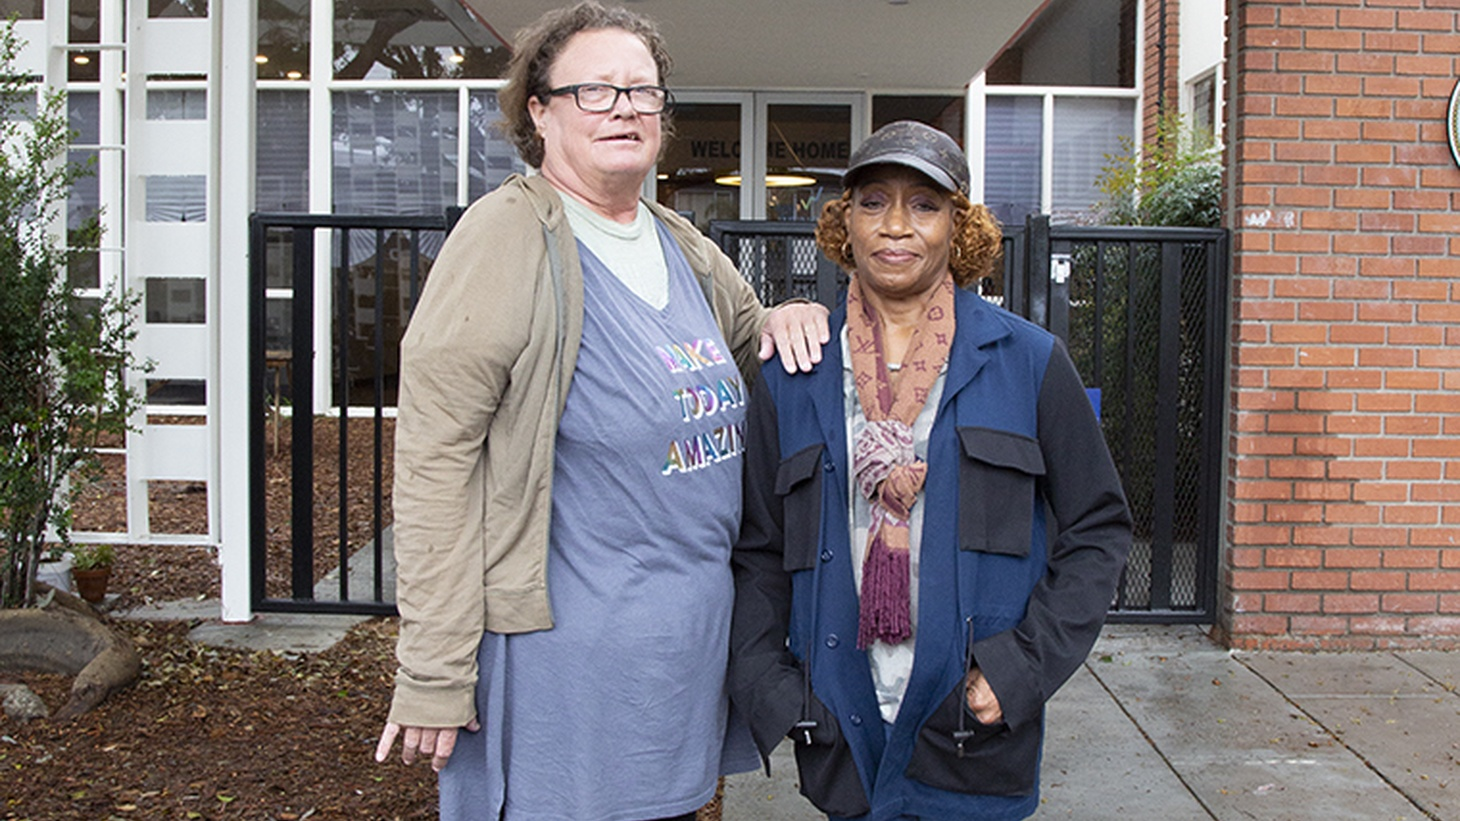 Christine Curtiss, left, in front of the Hollywood shelter she moved to last year, with her best friend and advocate Kym Moore.